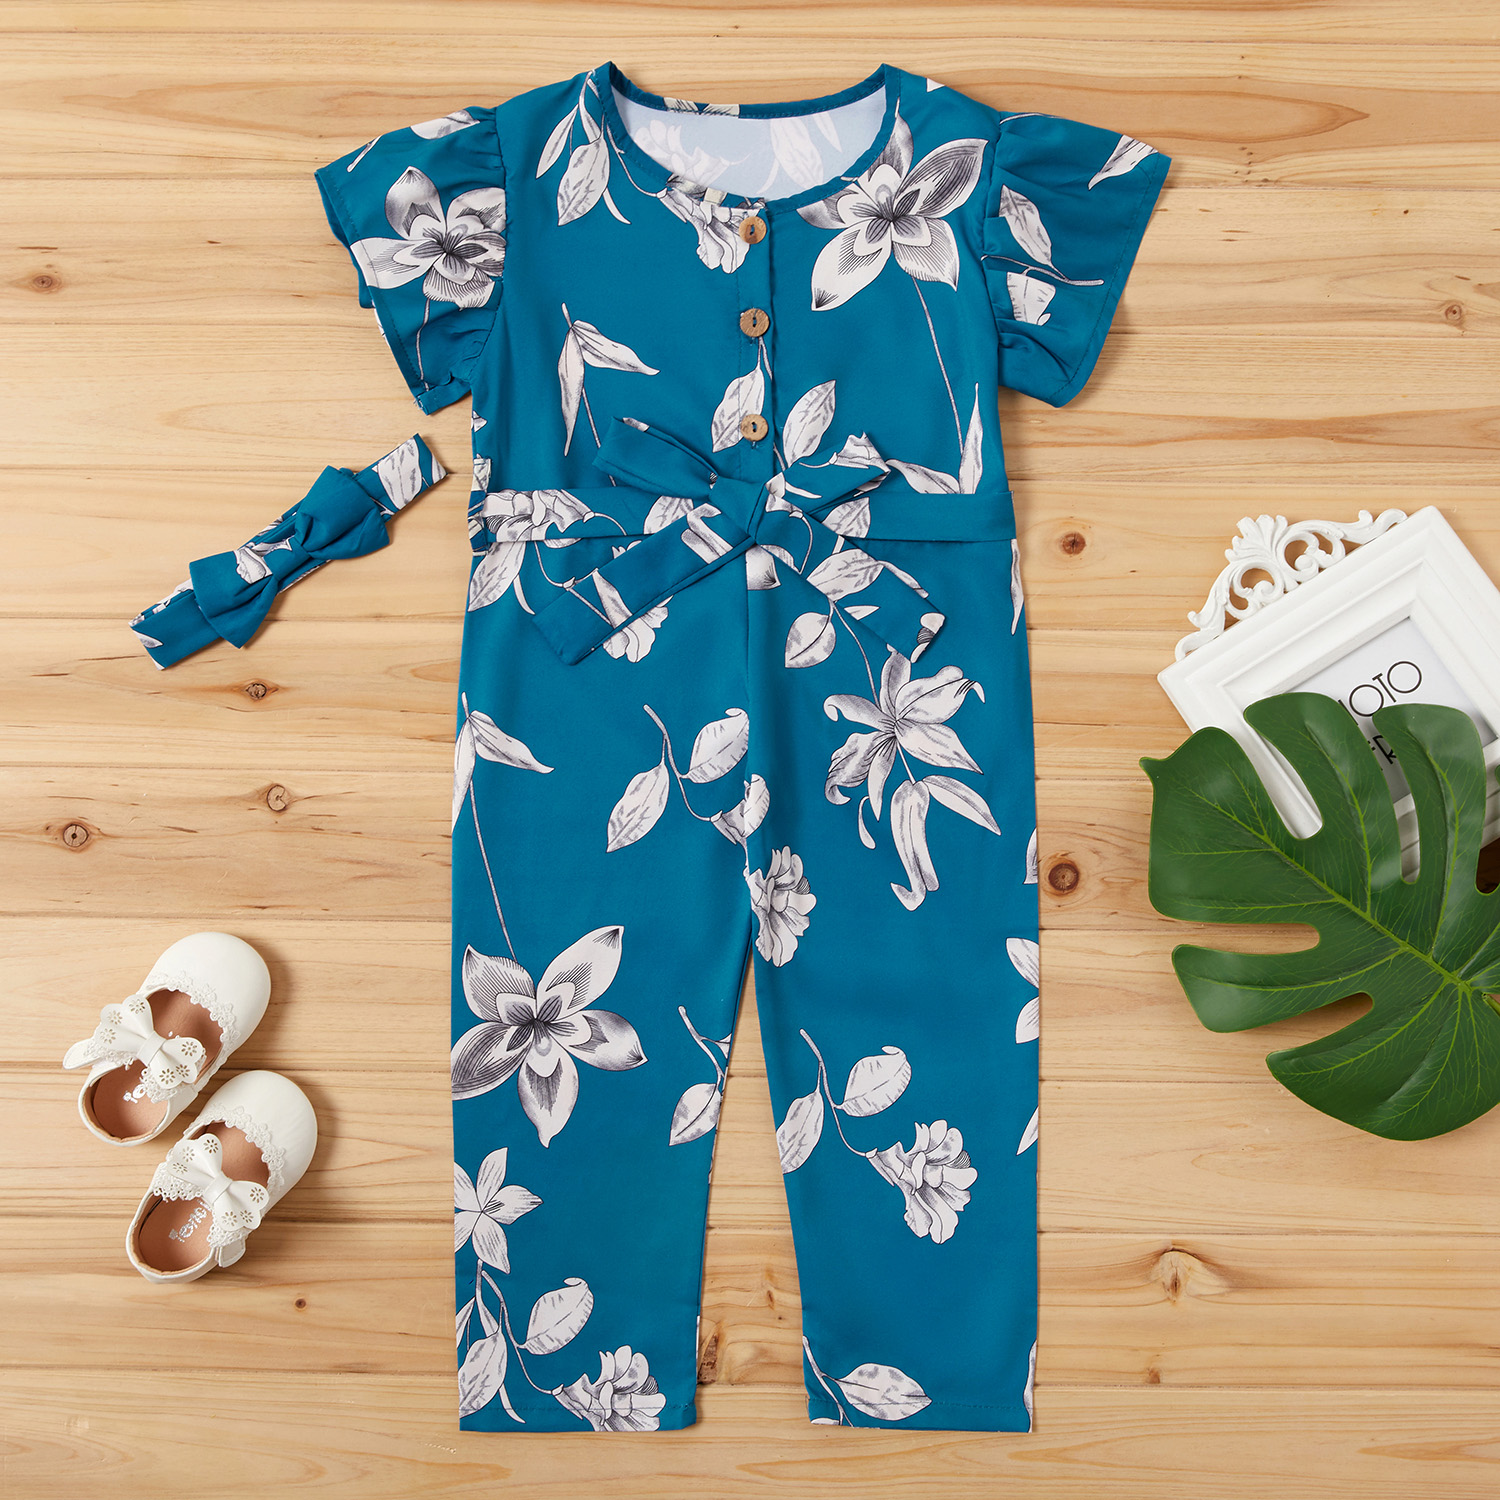 2-piece Baby / Toddler Girl Pretty Floral Print Bowknot Onesies Set